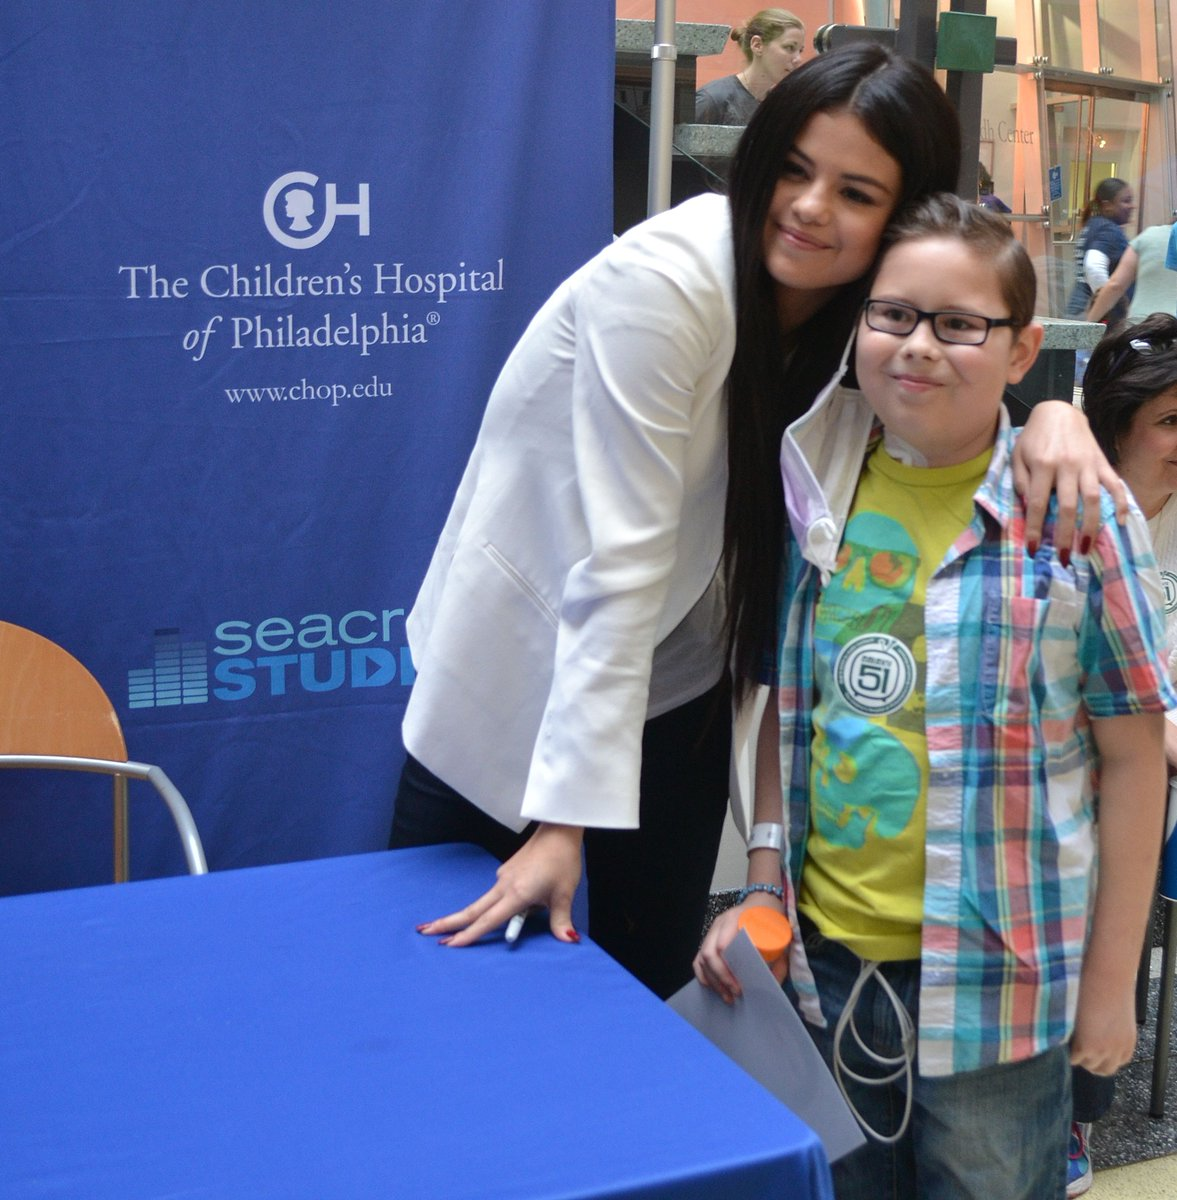 BIG thanks to @Selenagomez for putting so many smiles on so many faces at CHOP's #SeacrestStudios! @RyanFoundation https://t.co/bc5z7ohGav